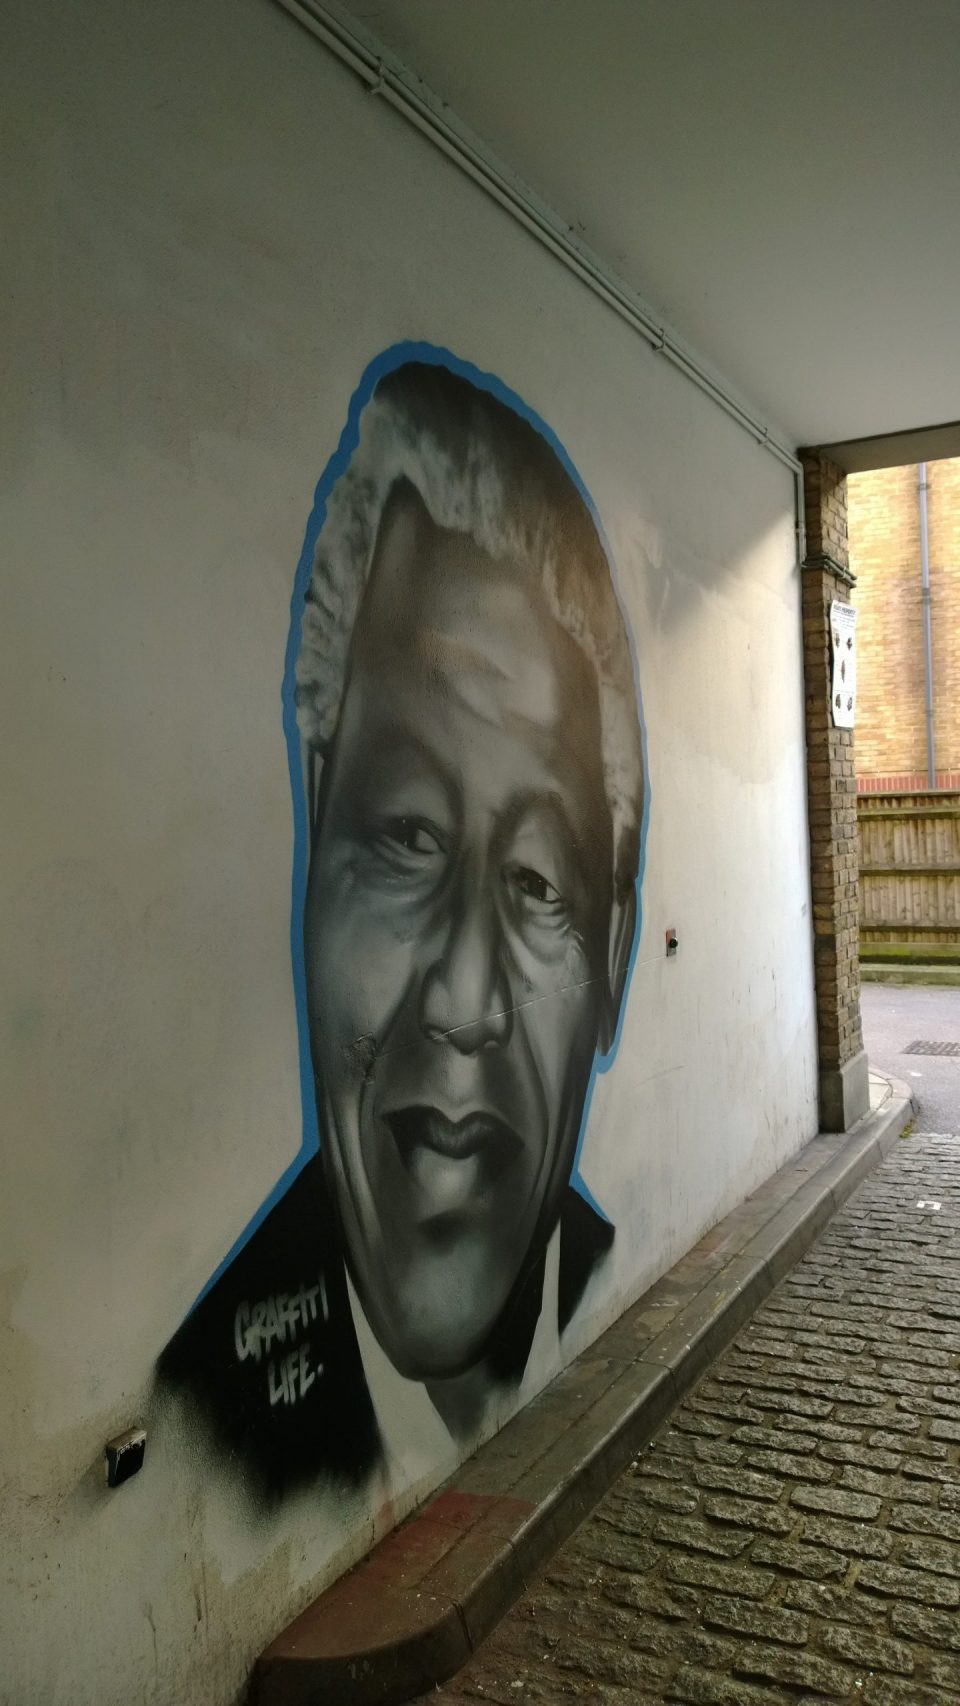 This portrait by Graffiti could be found on Cheshire Street in London